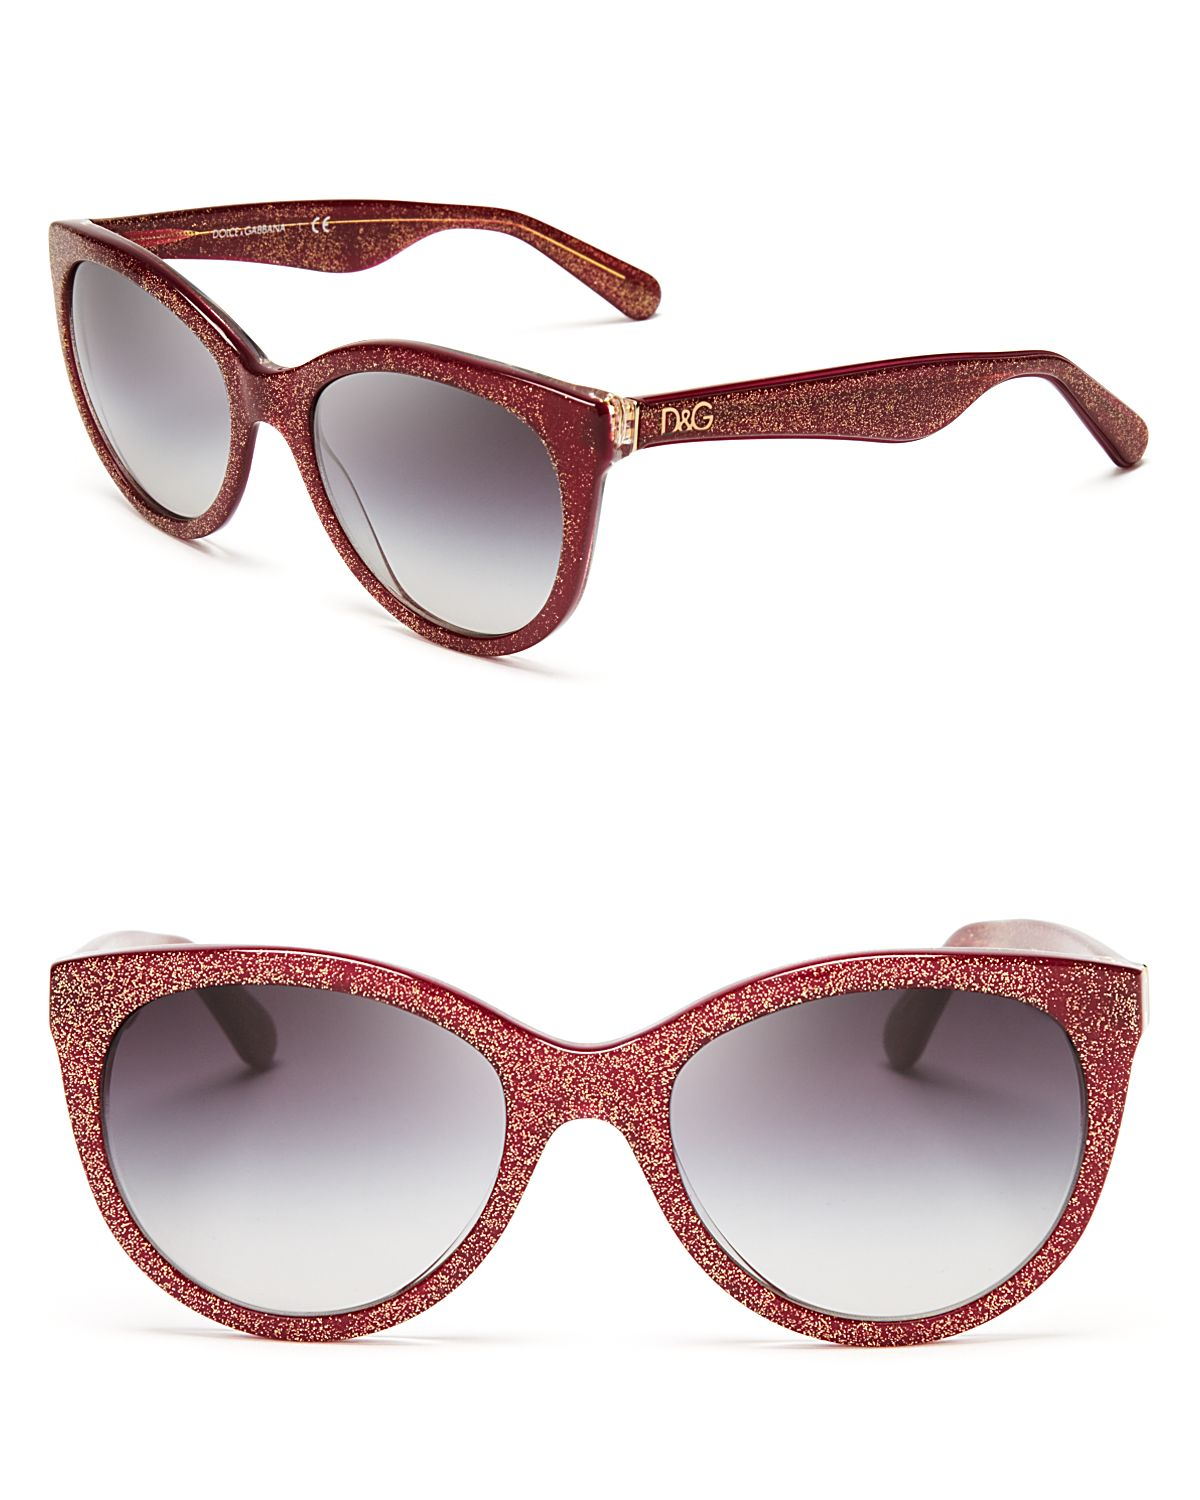 d51eec1b97d Lyst - Dolce   Gabbana Rounded Glitter Cat Eye Sunglasses in Red